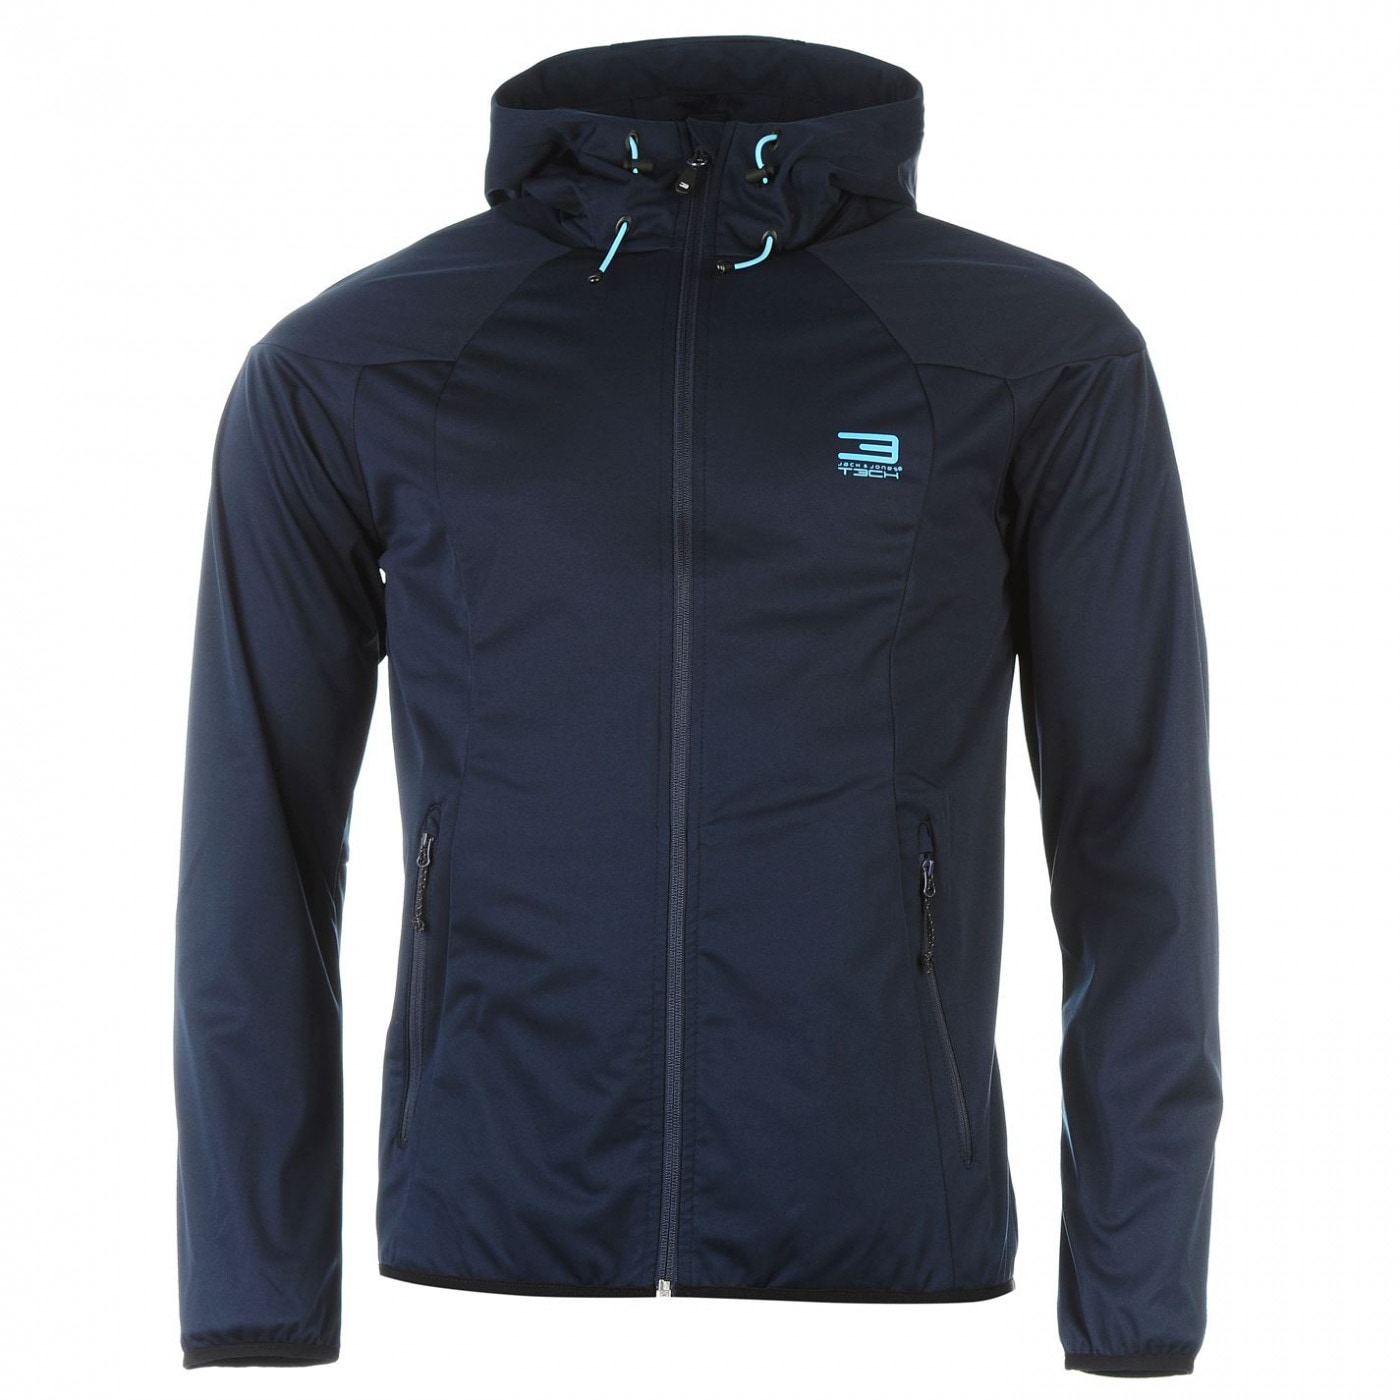 Jack Shell Jacket Flex FACTCOOL Mens Jones and DHE9b2YIeW